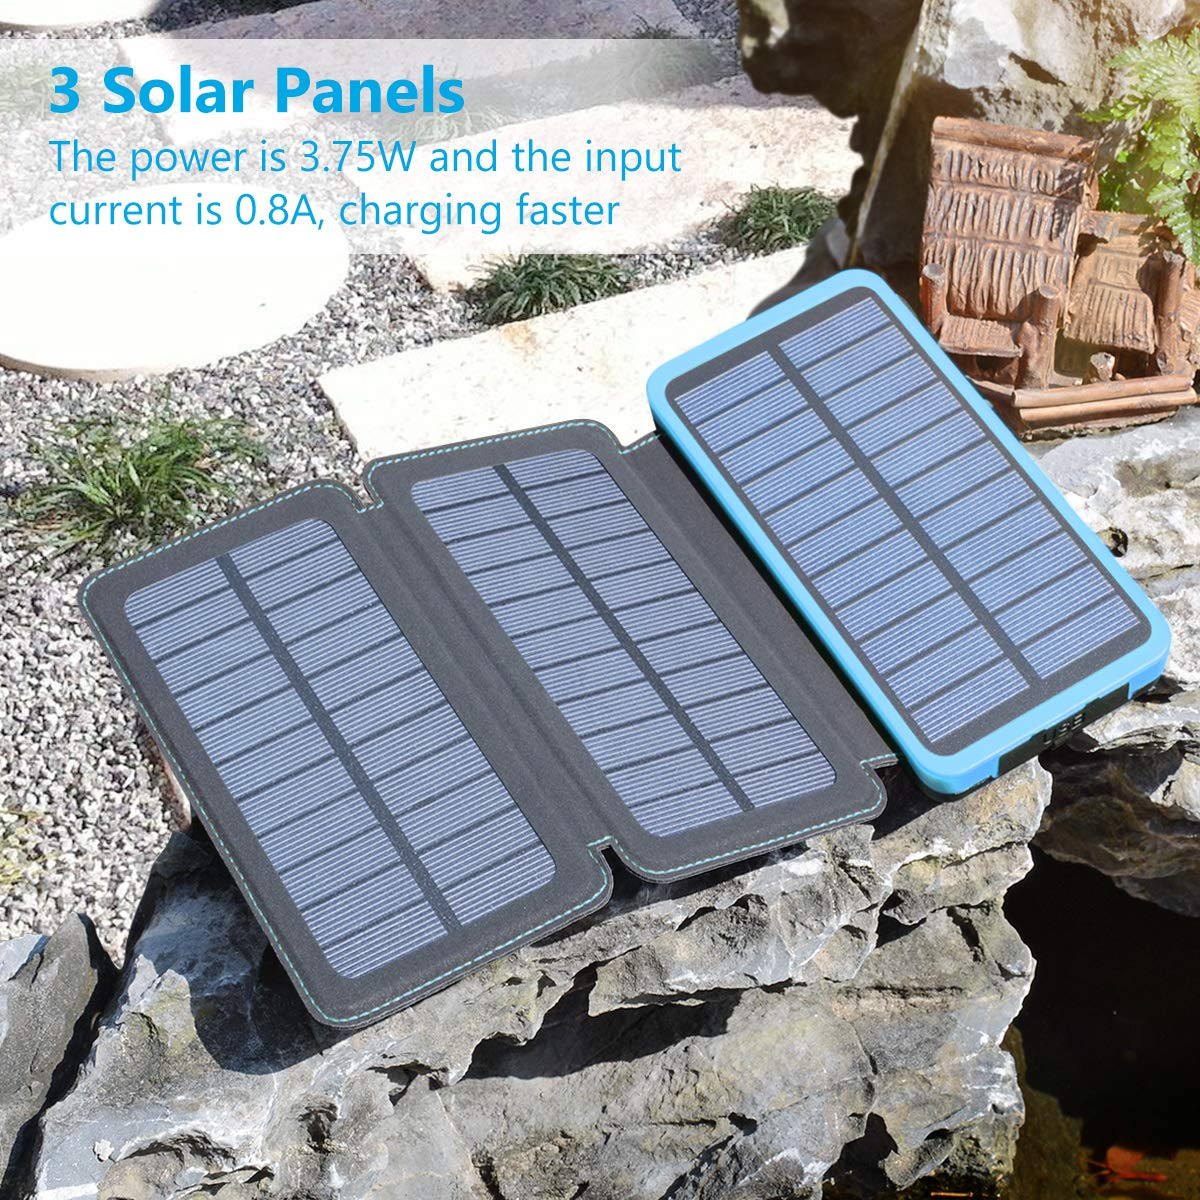 Tablets and More FEELLE Portable Charger External Battery Pack with Dual USB Ports Waterproof Phone Charger for Smart Phones Solar Charger 24000mAh